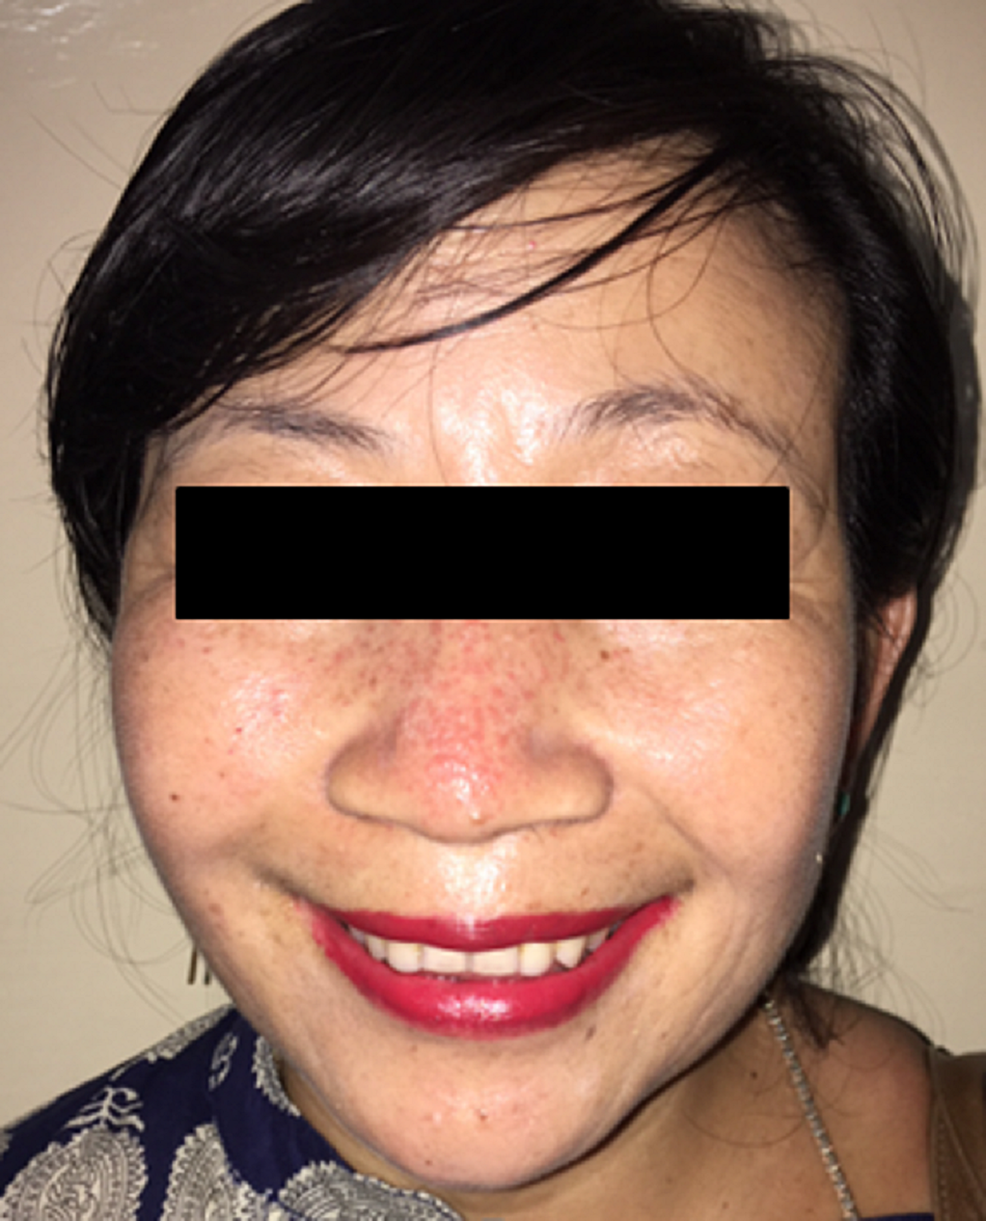 Patient's-face-at-the-eight-month-postoperative-follow-up-evaluation